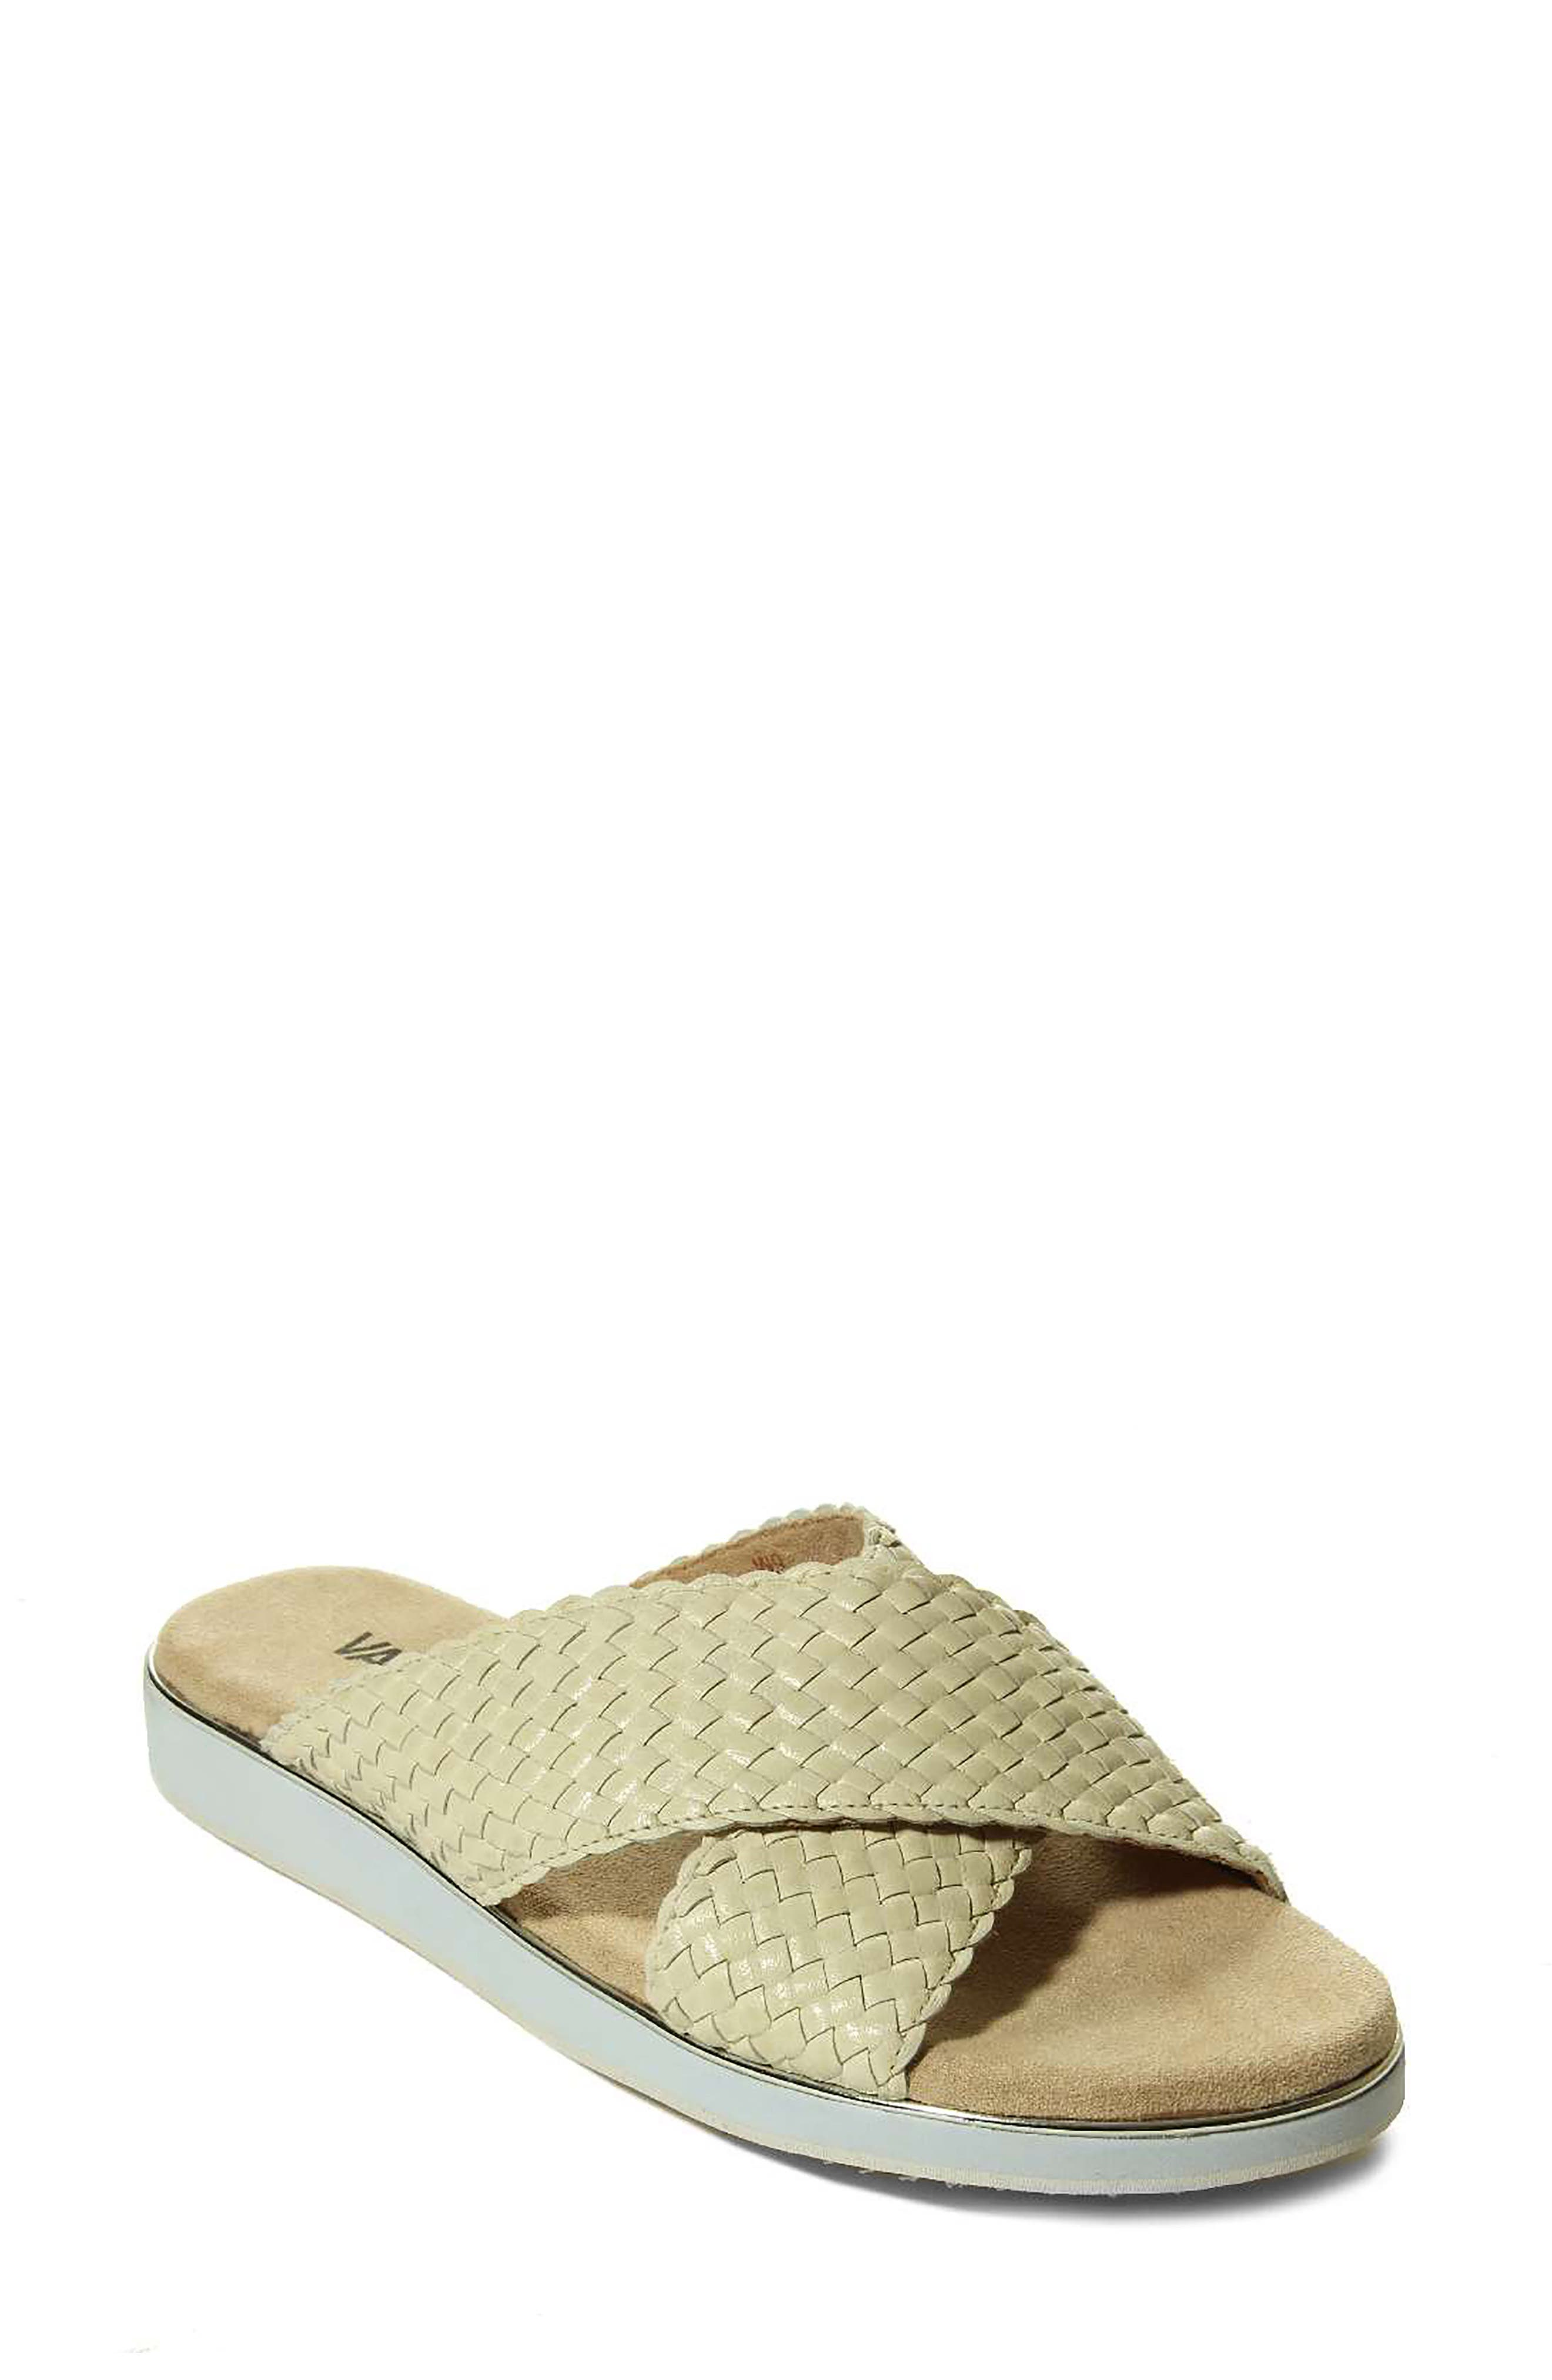 A foam-cushioned insole cradles and supports your foot in this basketweave slide. Style Name: Vaneli Edyta Slide Sandal (Women). Style Number: 6055902. Available in stores.